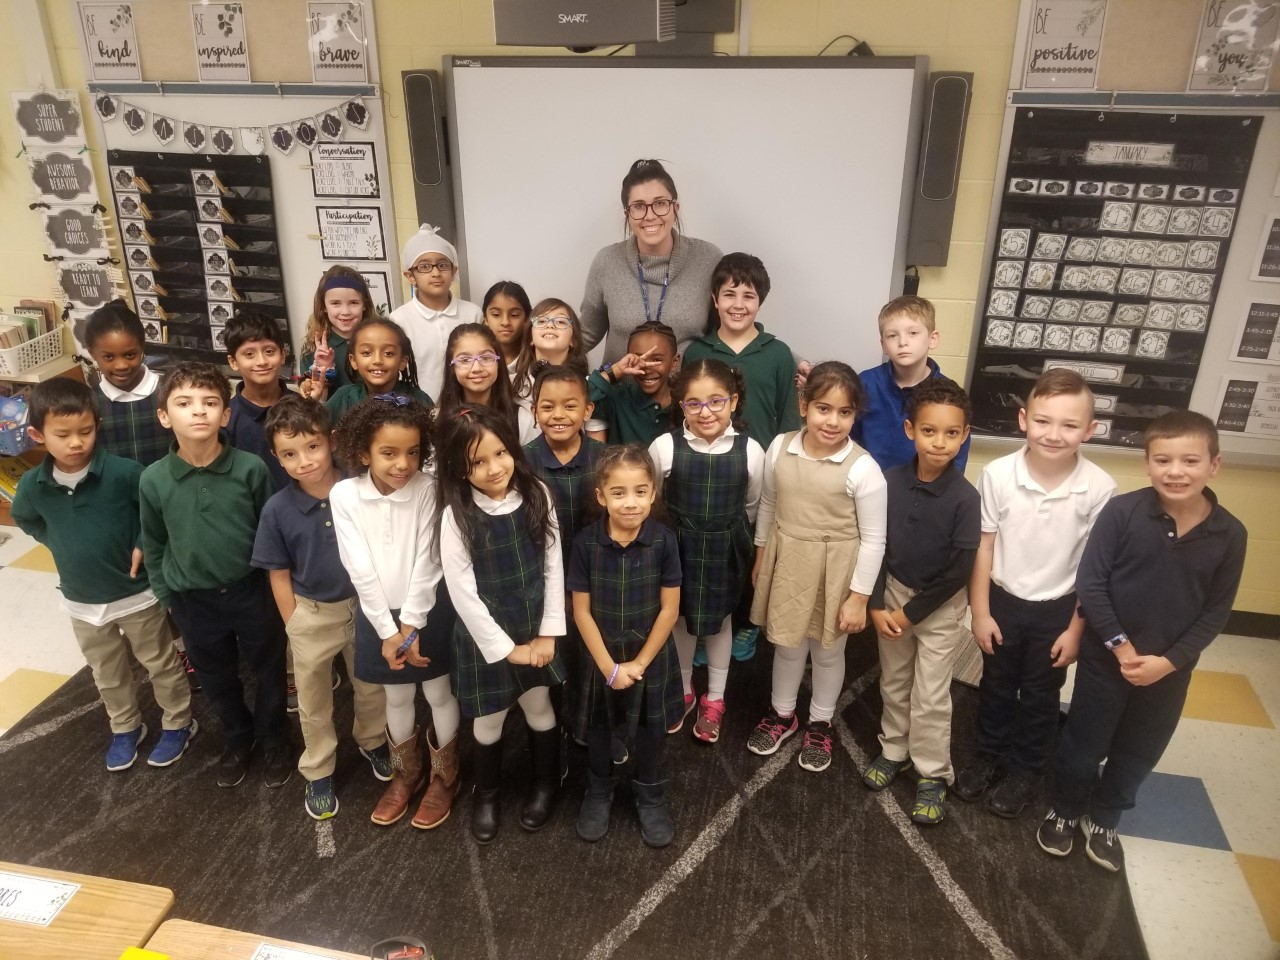 Image of Ms. Hollis and class